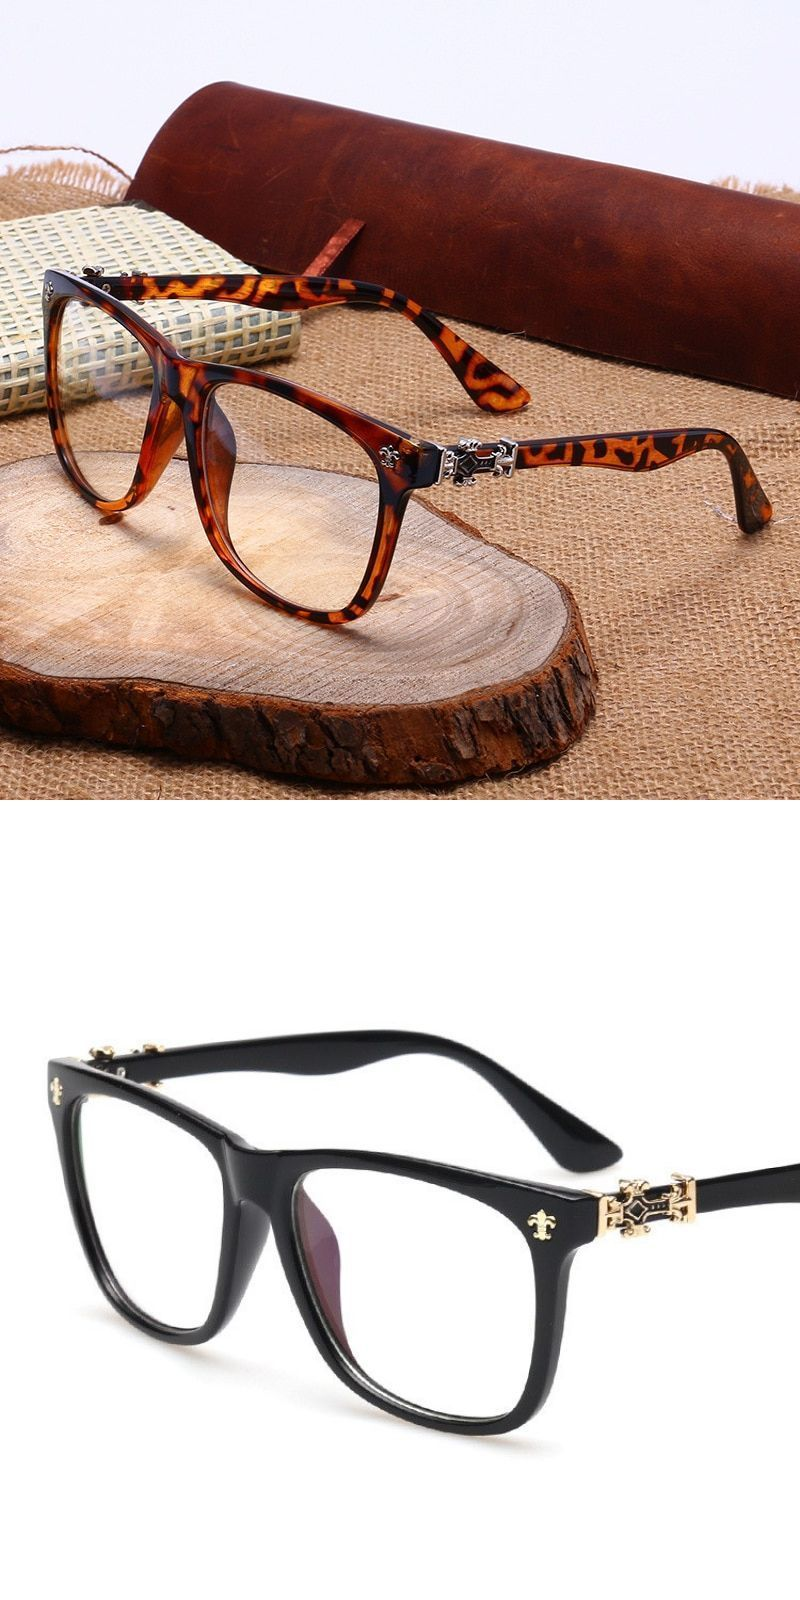 29c098e03ed5 Vintage eyeglass frames women men designer eyewear frame optical eye  glasses frame can match photochromic lenses